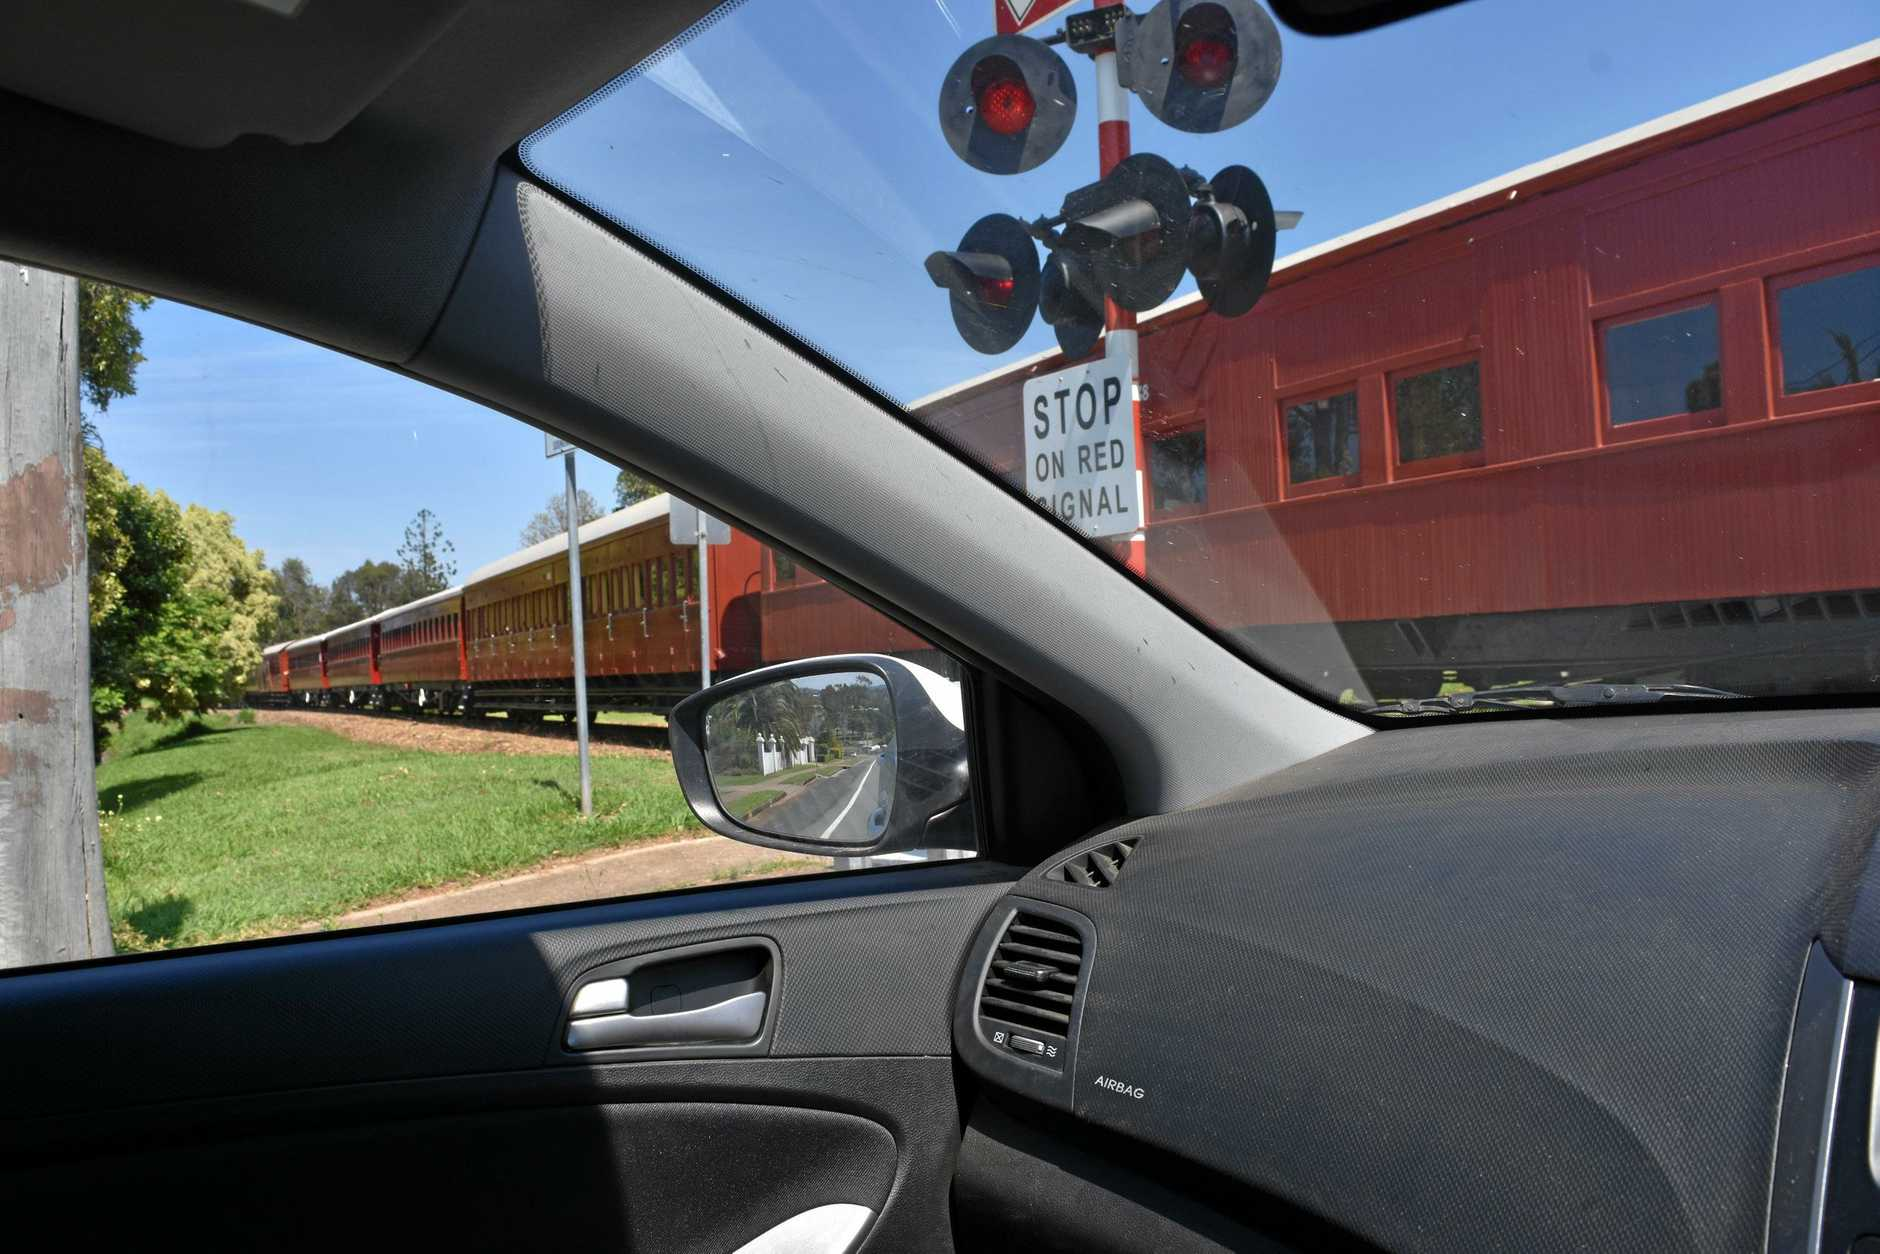 RATTLER: Drivers need to remember the Rattler is back on the rails in Gympie, including on the level crossings where motorists now need to keep an eye out for the flashing lights that say a train is on the way.